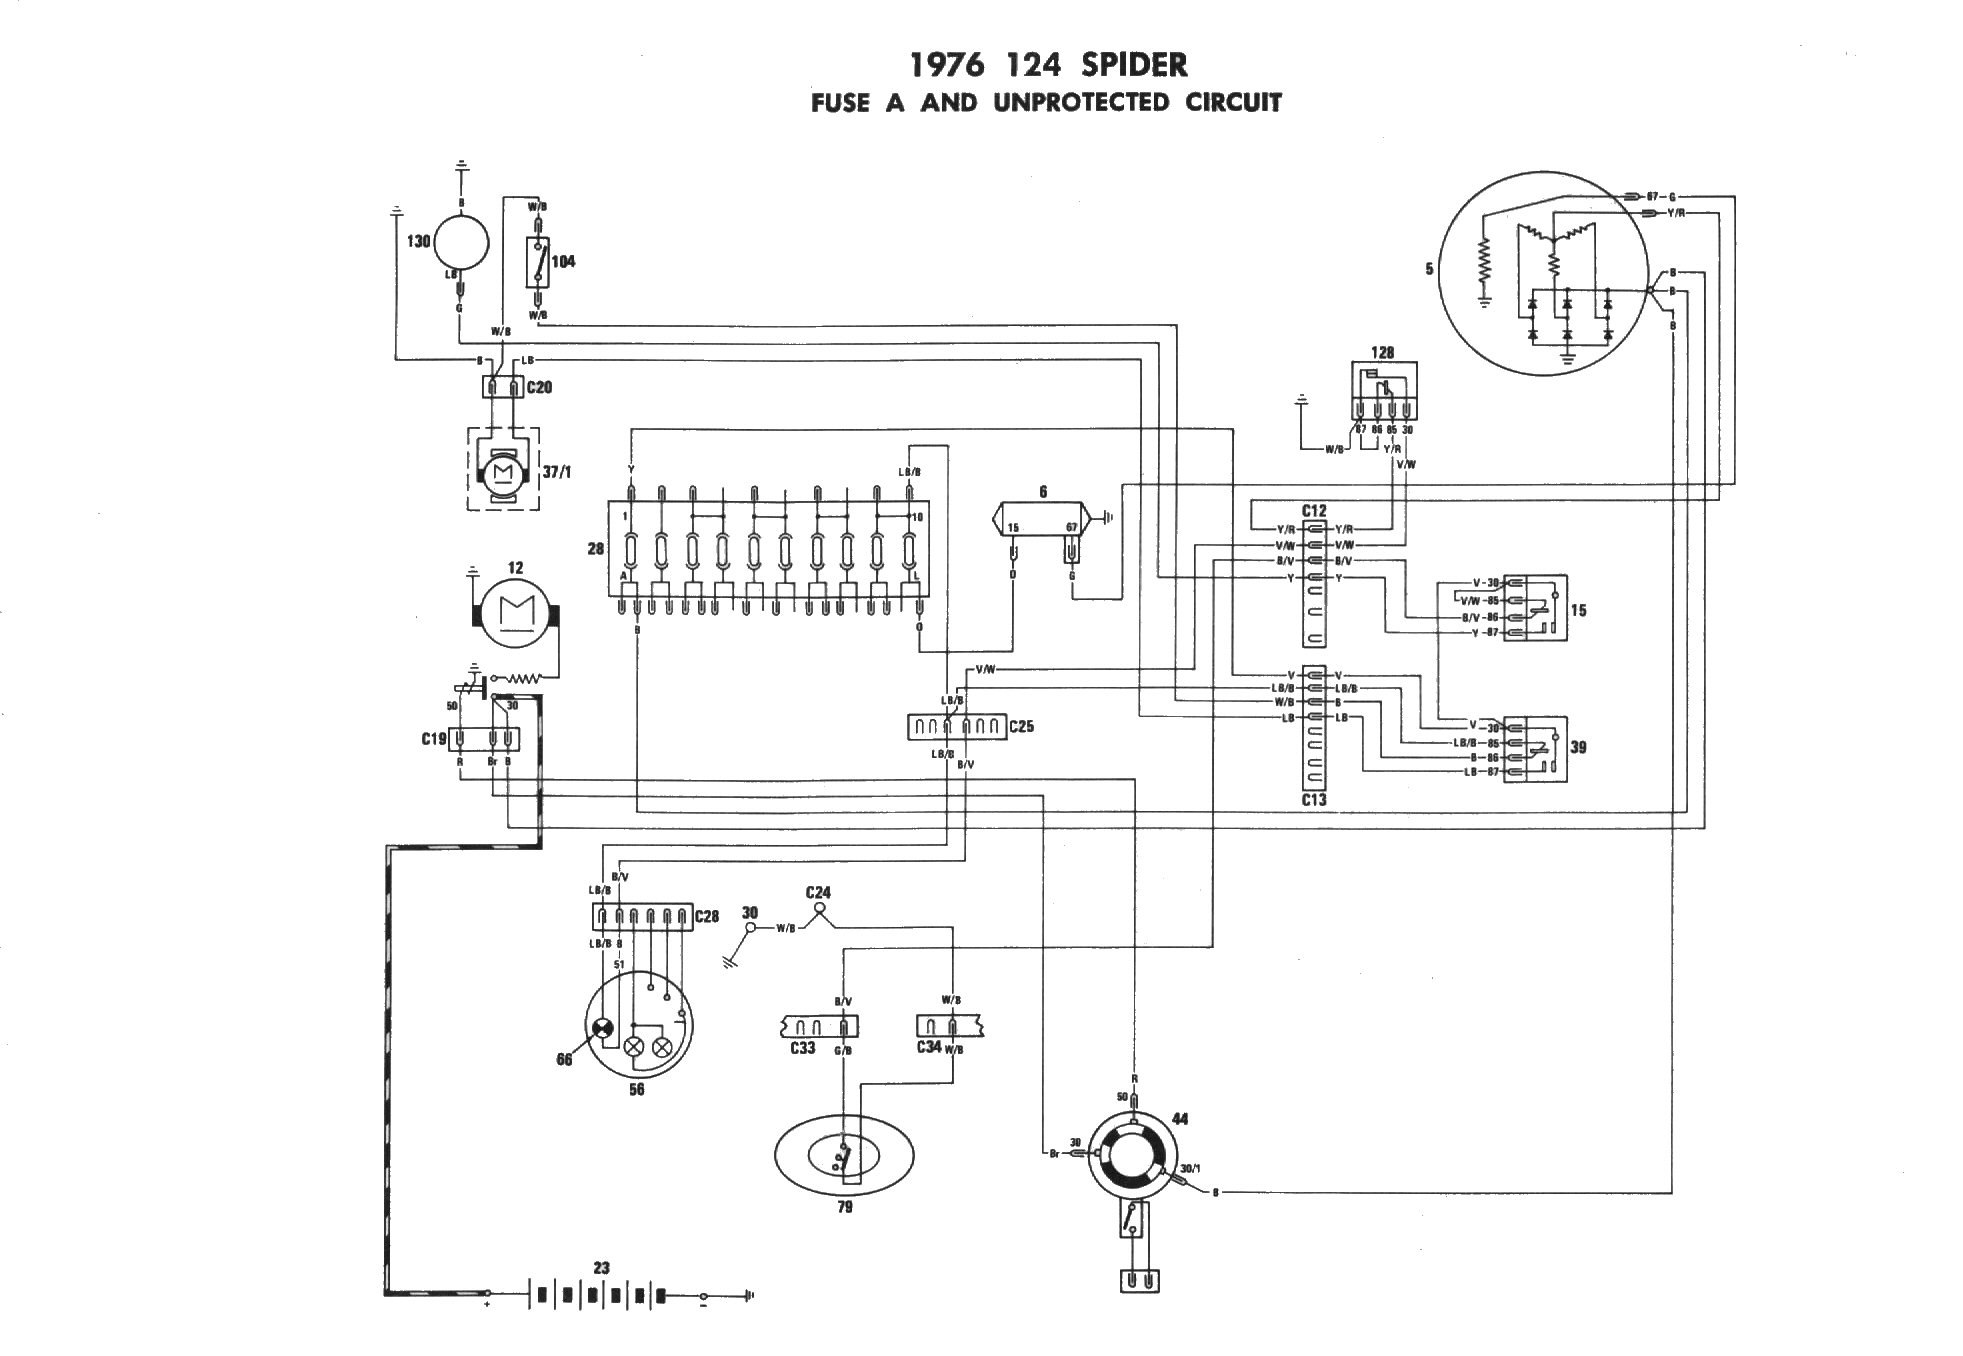 fiat 124 spider electrical schemes